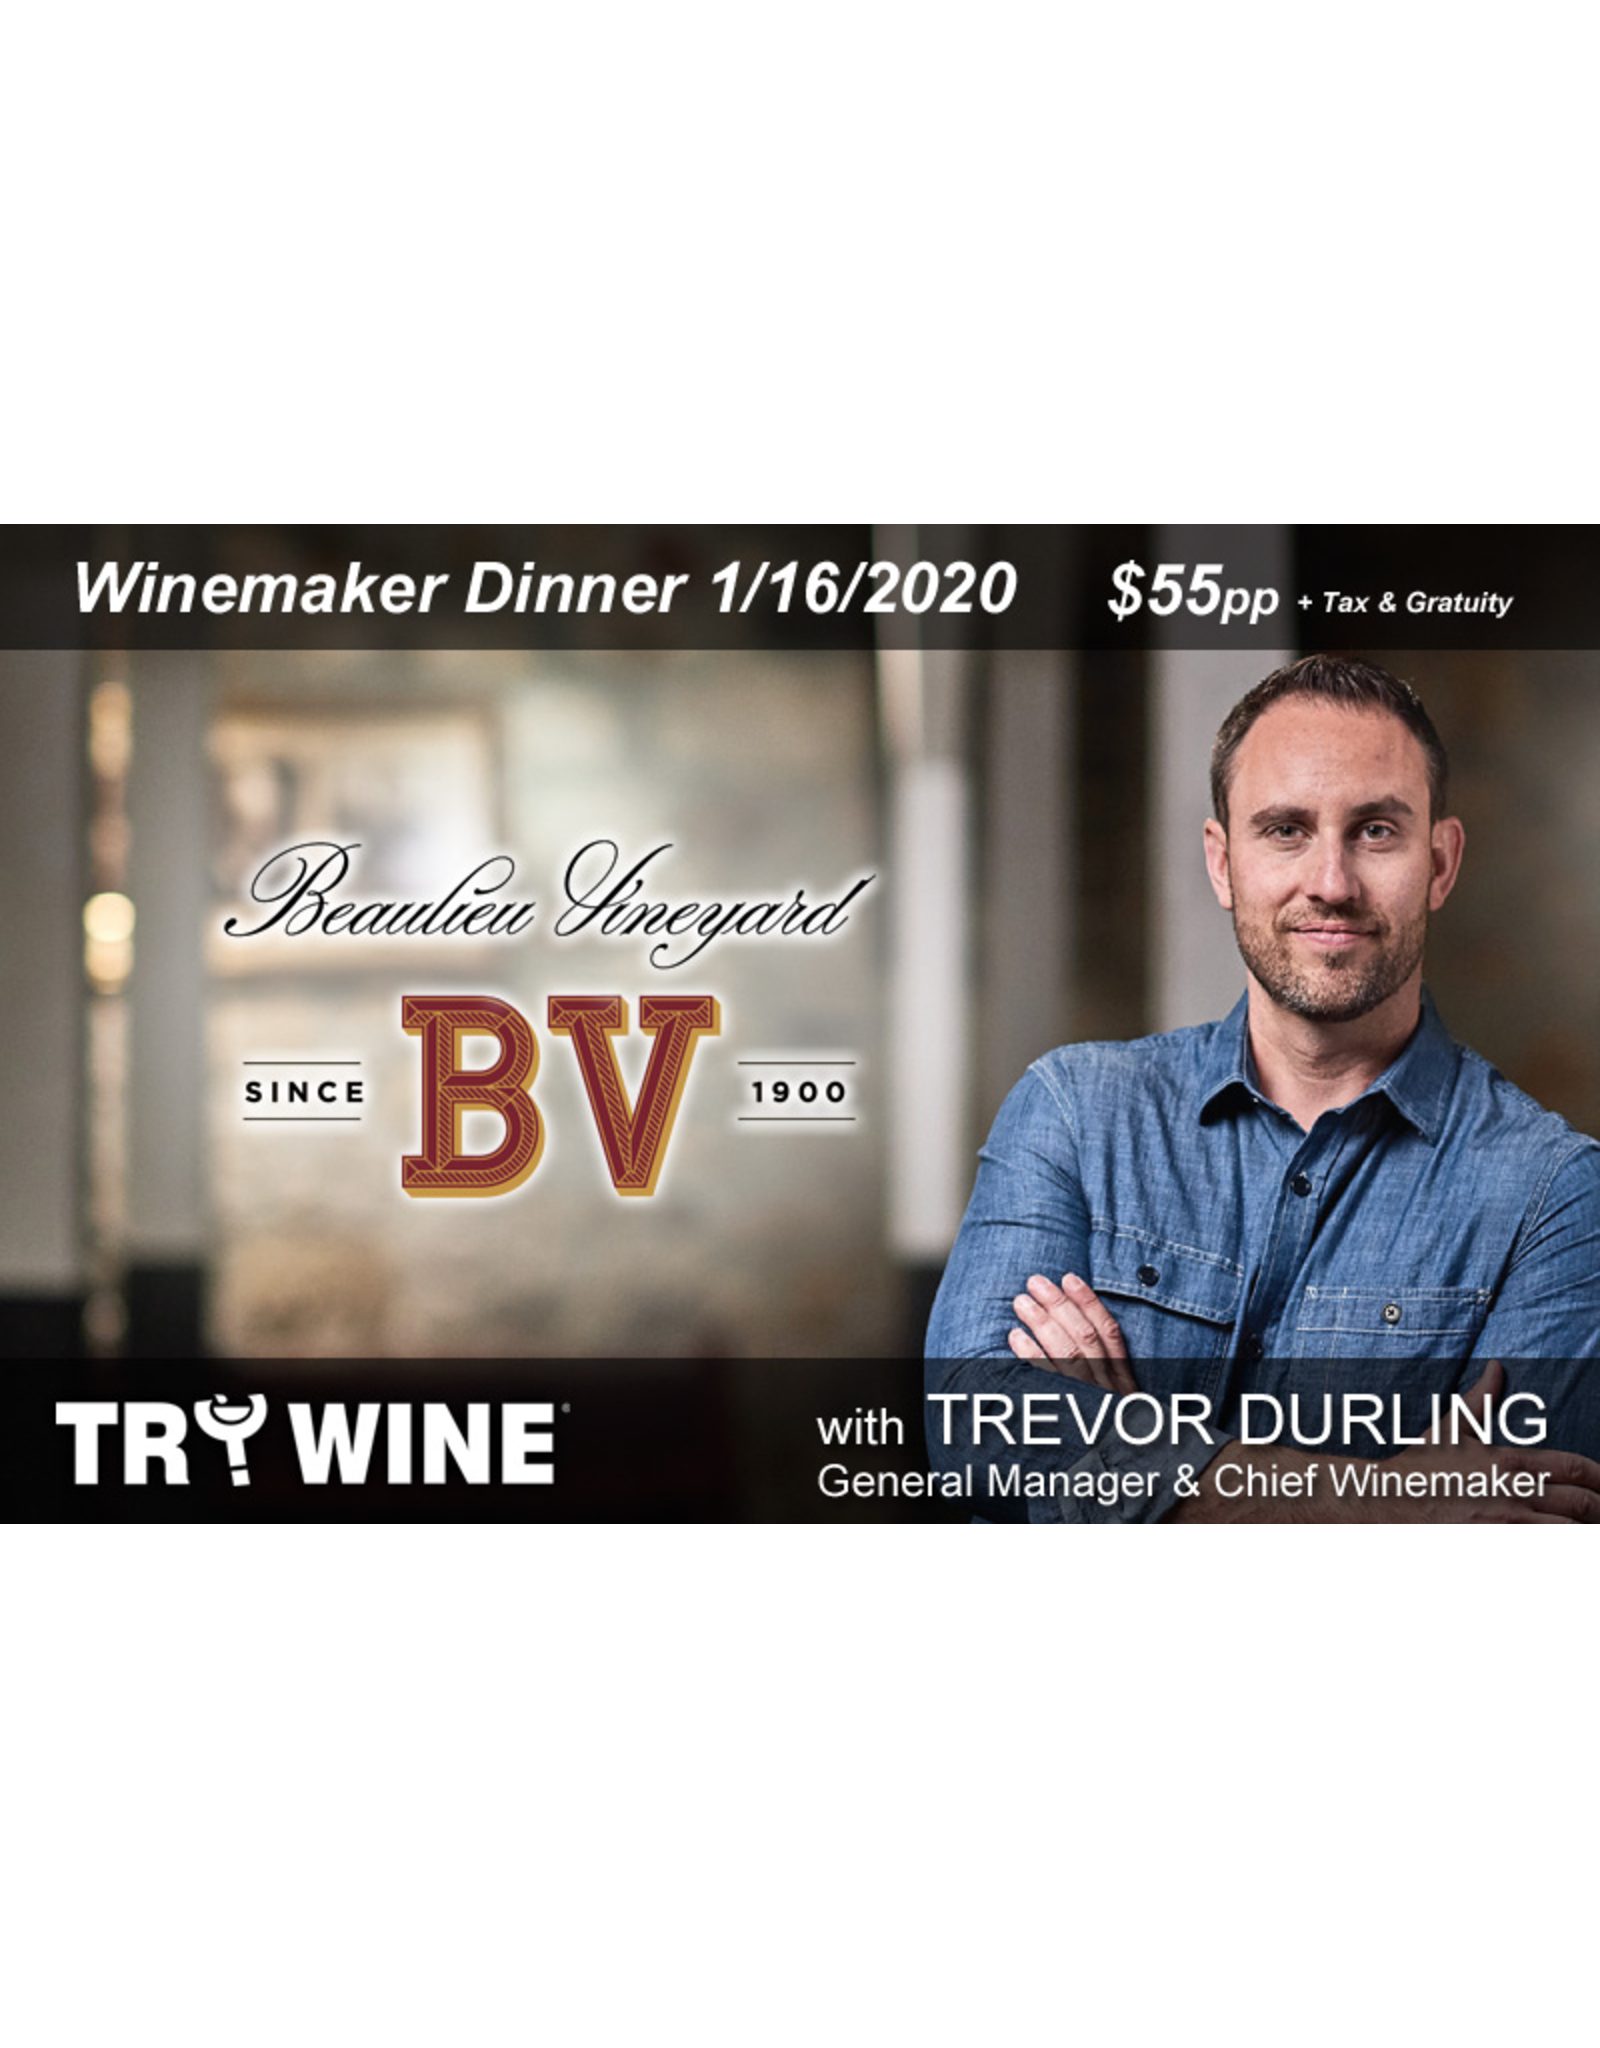 Special EVENTS BV Winemaker Dinner THU 1.16.20, Fully Transferable but NON-REFUNDABLE.